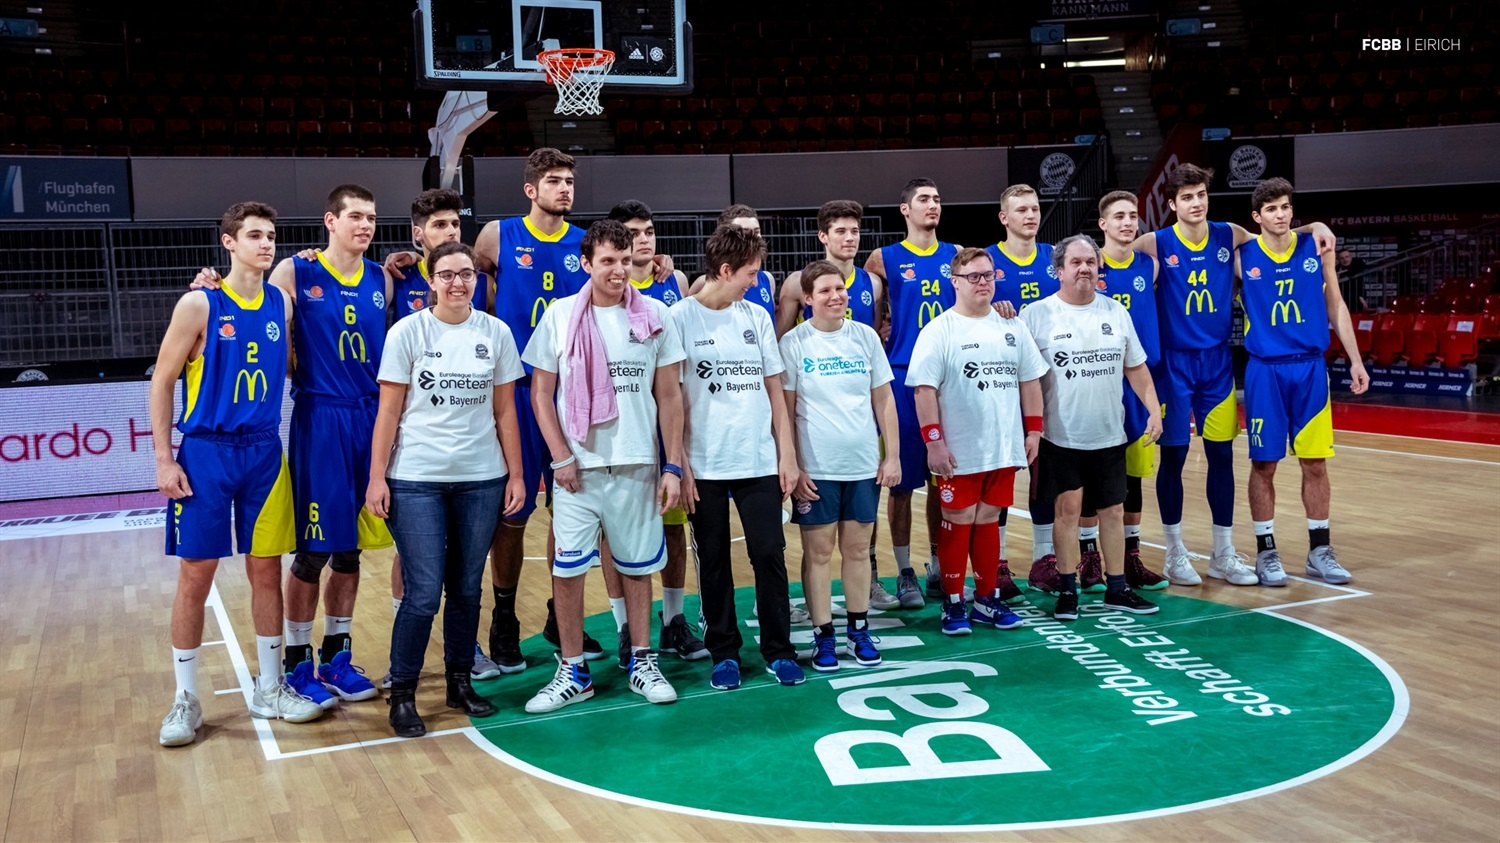 One Team with U18 Maccabi Teddy Tel Aviv - ANGT Munich 2019 (photo FCBB - Eirich) JT18